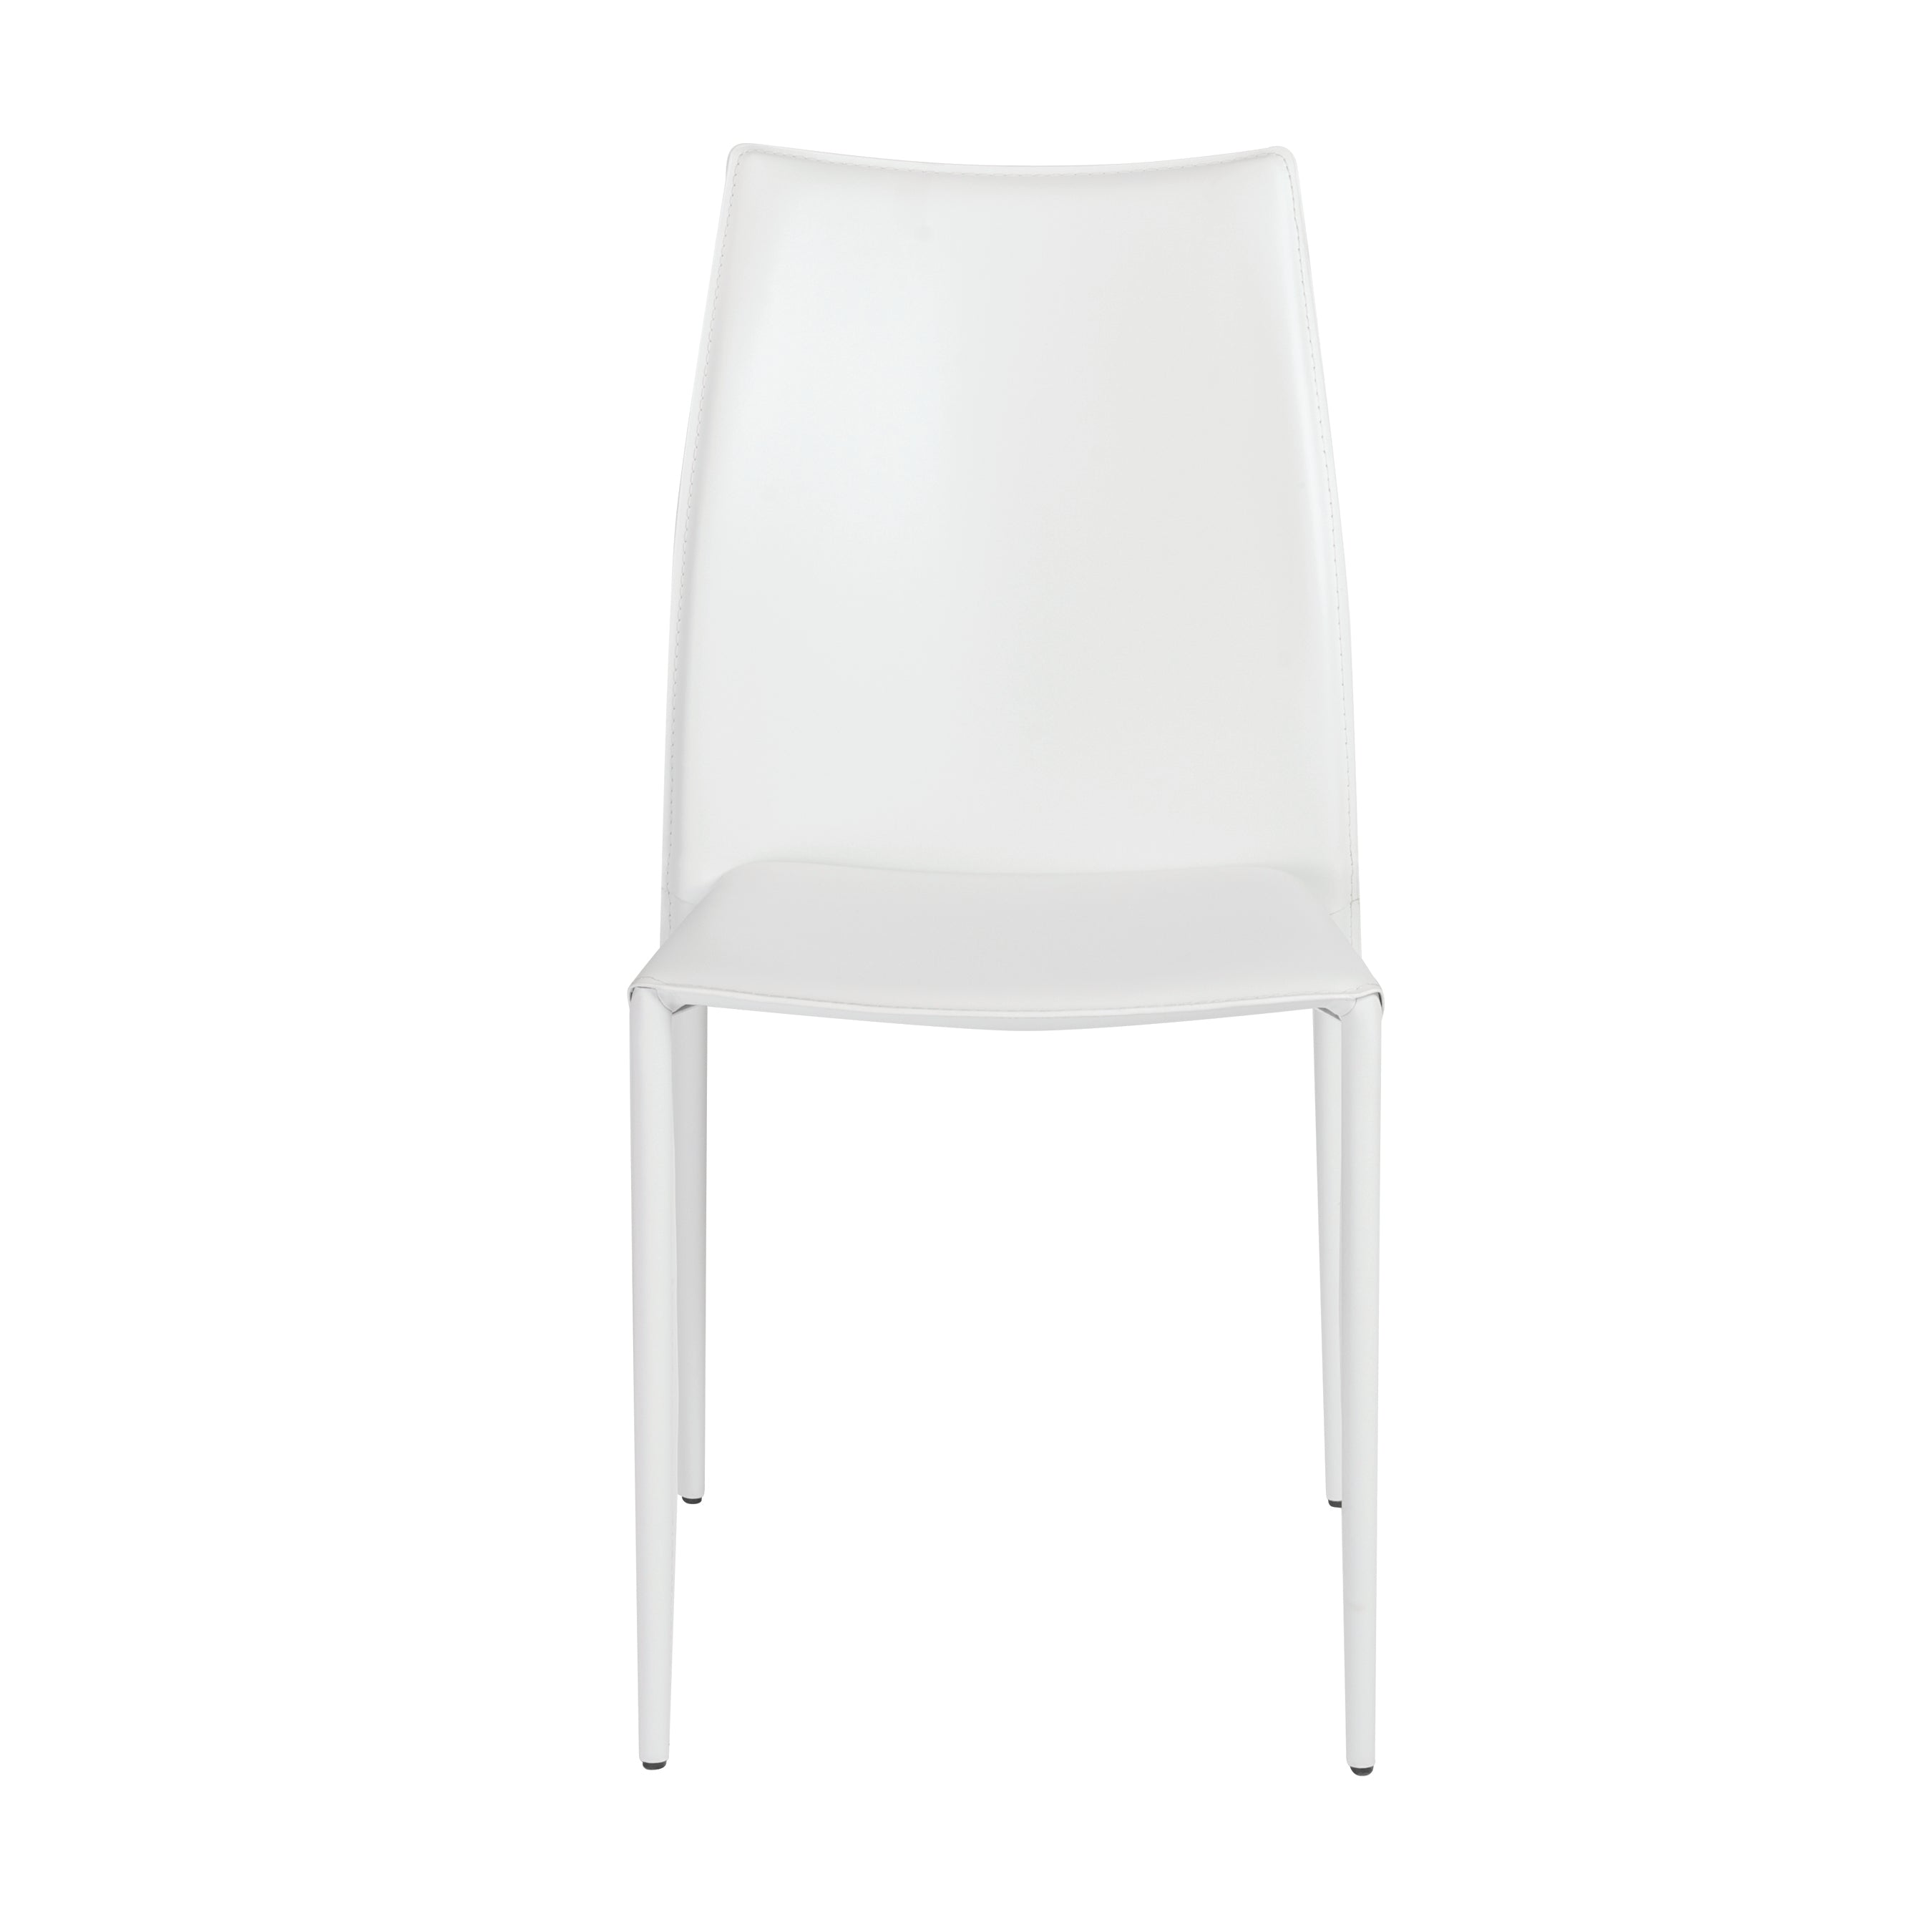 Stylish Guest or Conference Chairs of White Regenerated Leather (Set of 4)